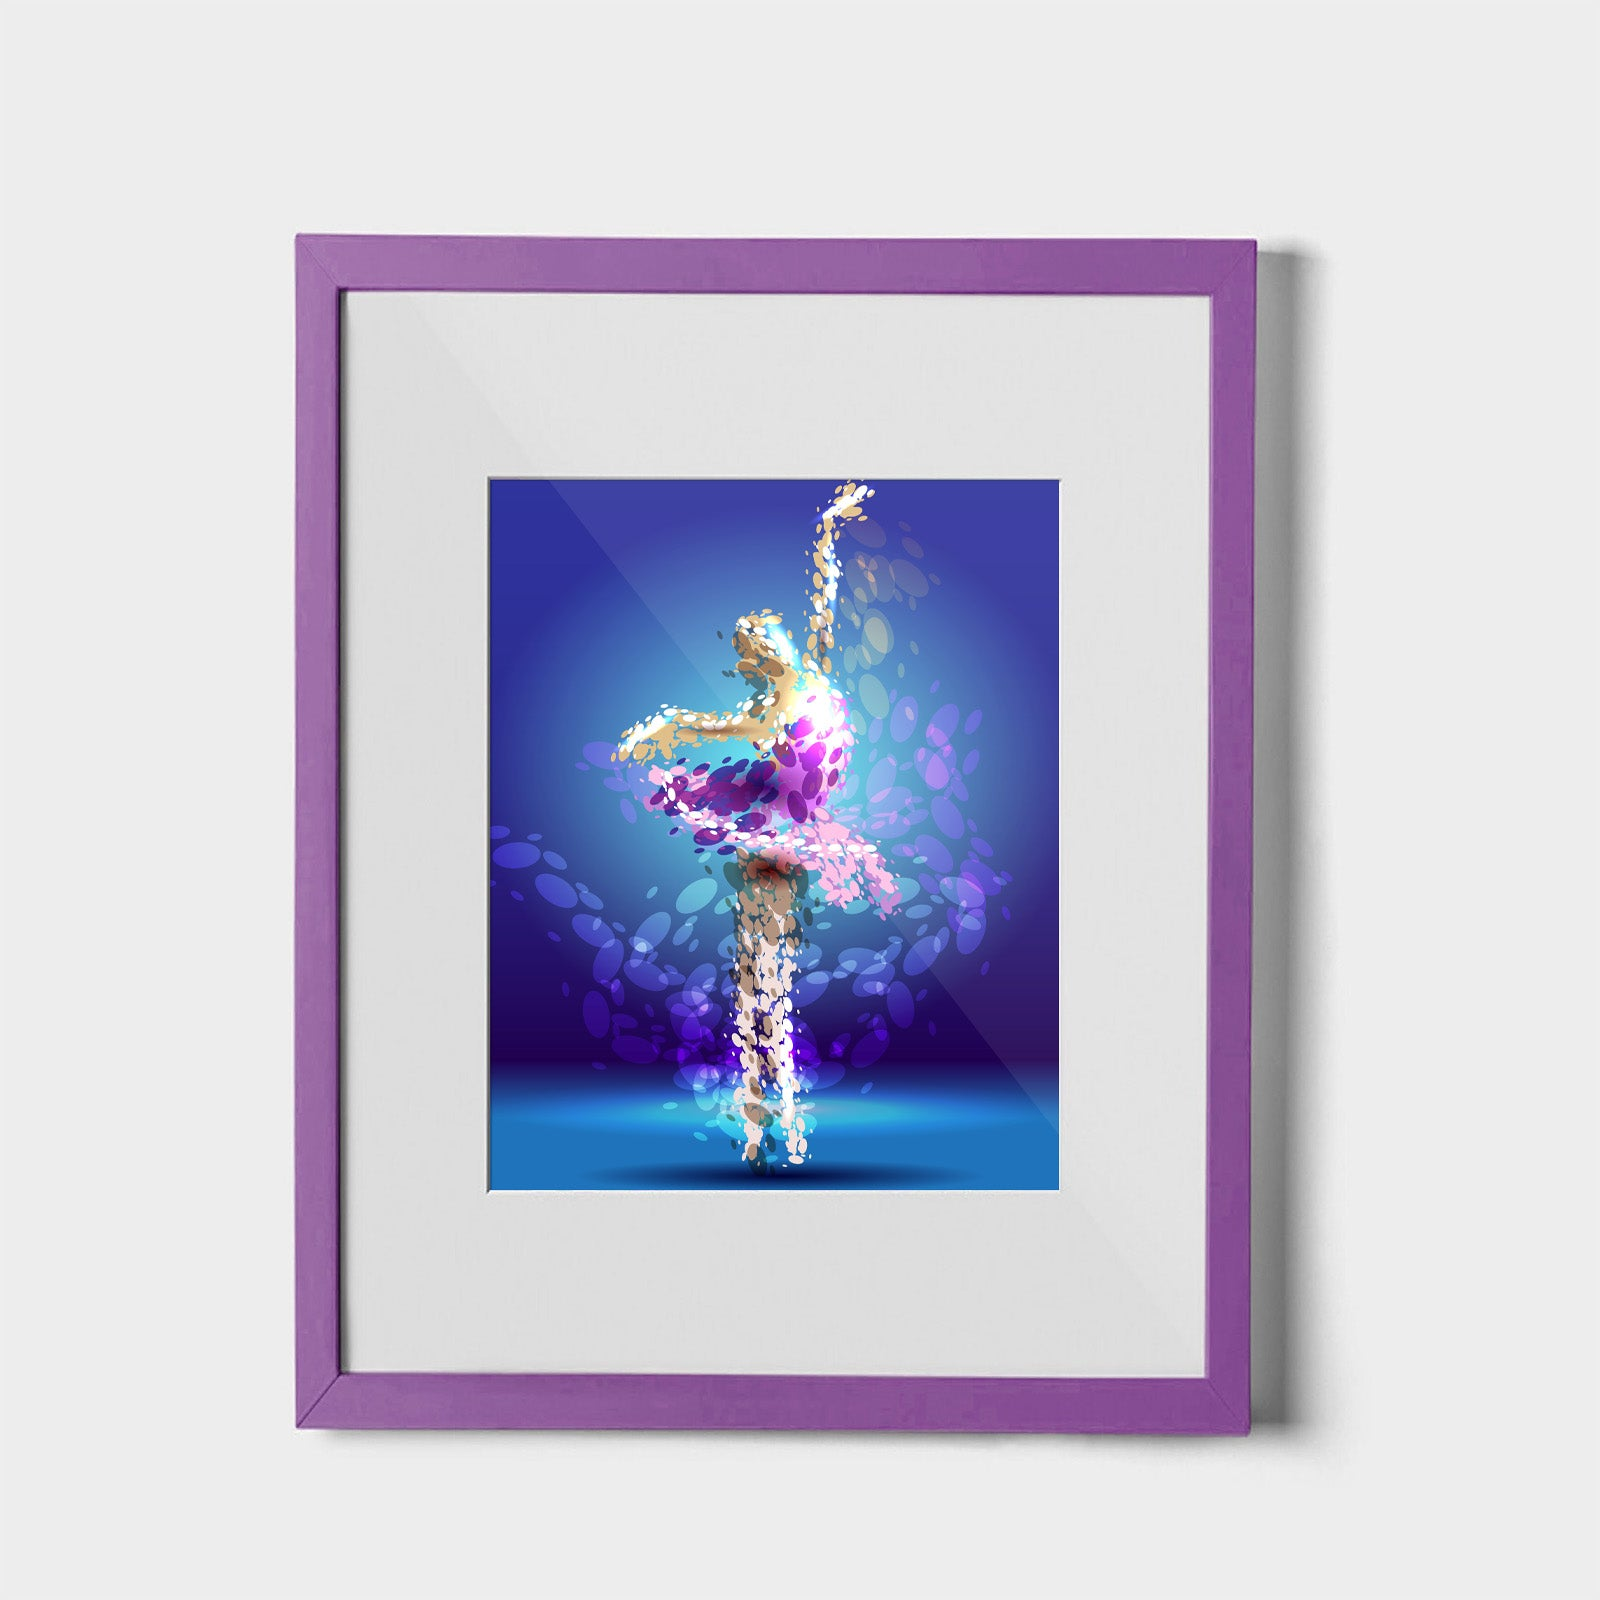 Tiny Dancer Print Standard ARtscapes-AR - ARtscapes